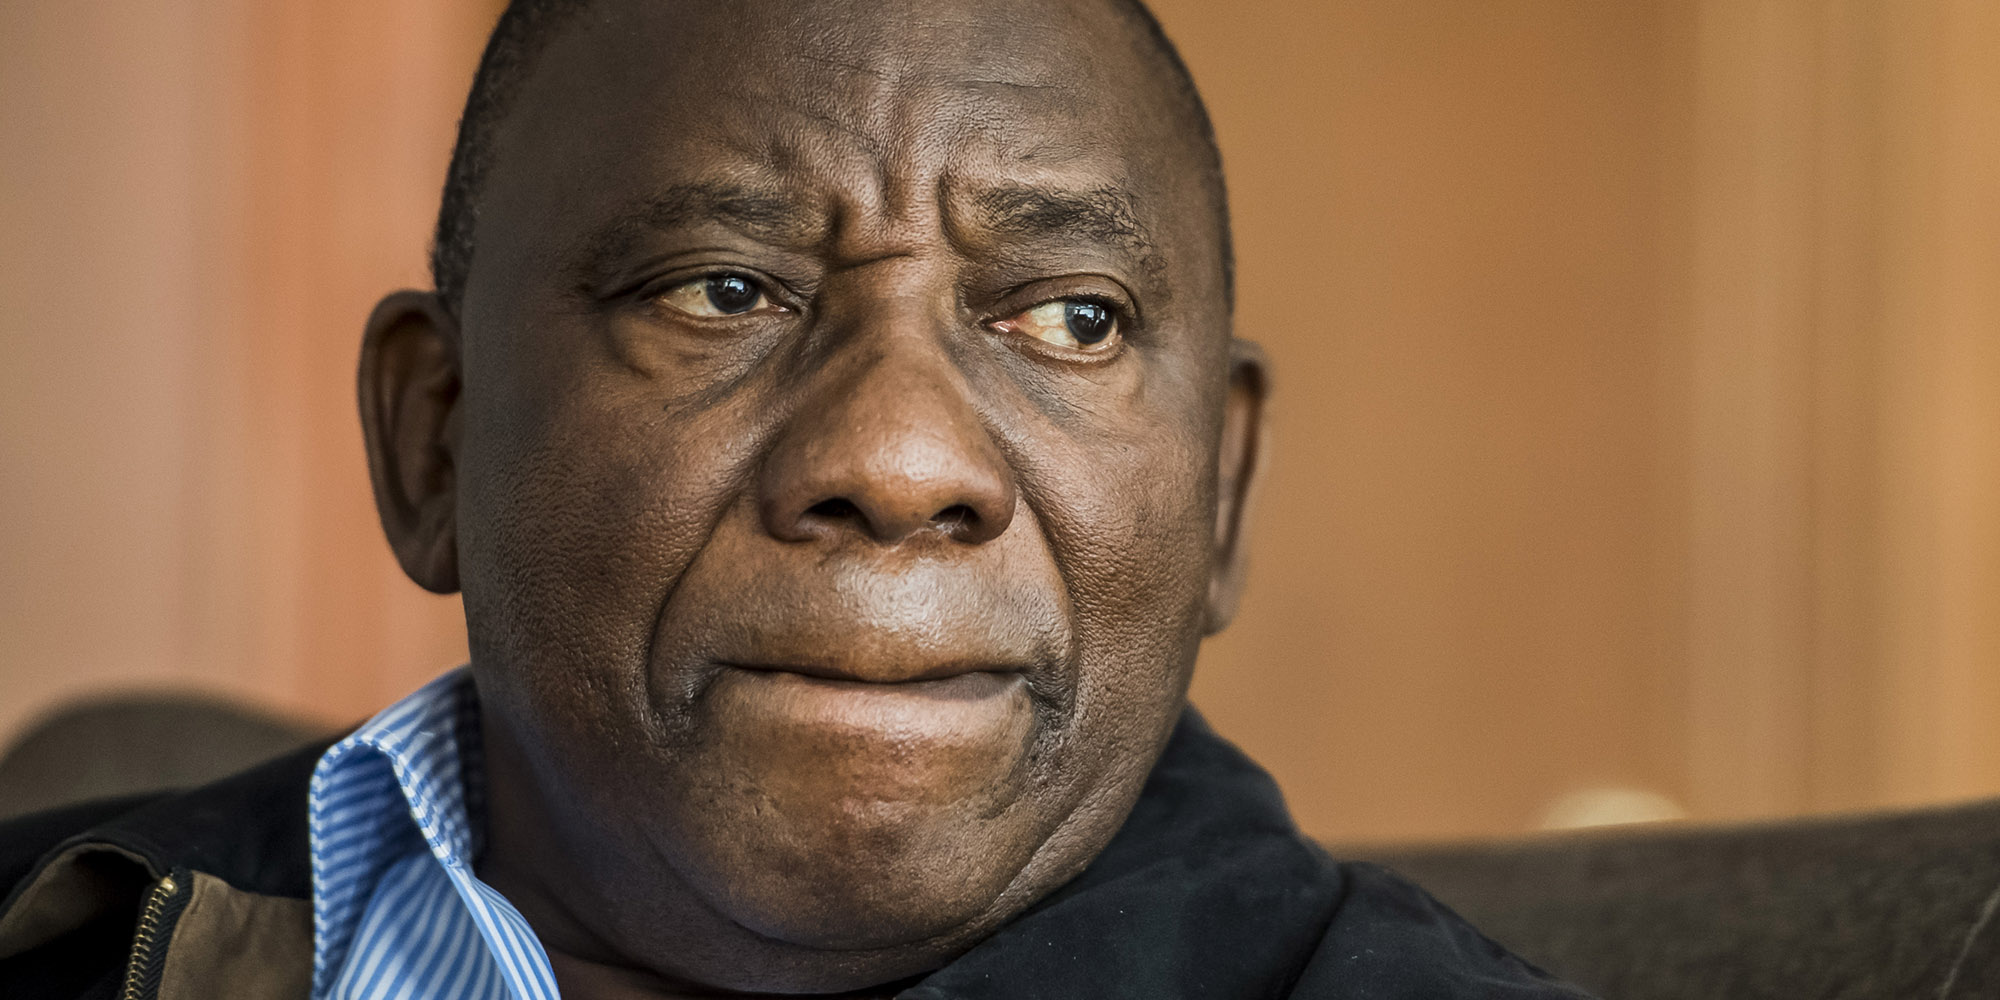 Analysis: It seems nothing can stop the ANC from dragging the government and the country down